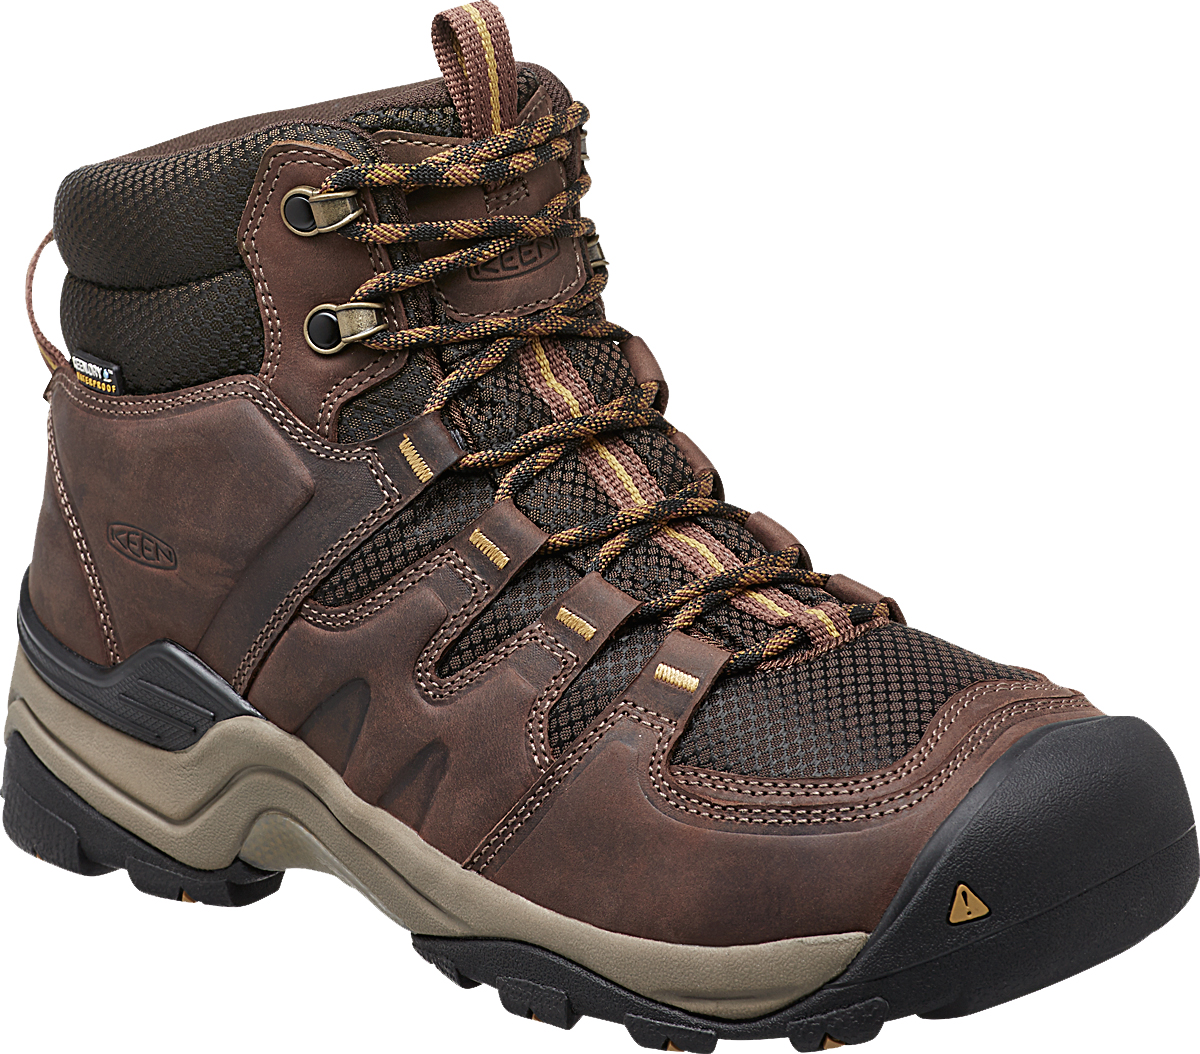 f193272d43c Hiking shoes | MEC